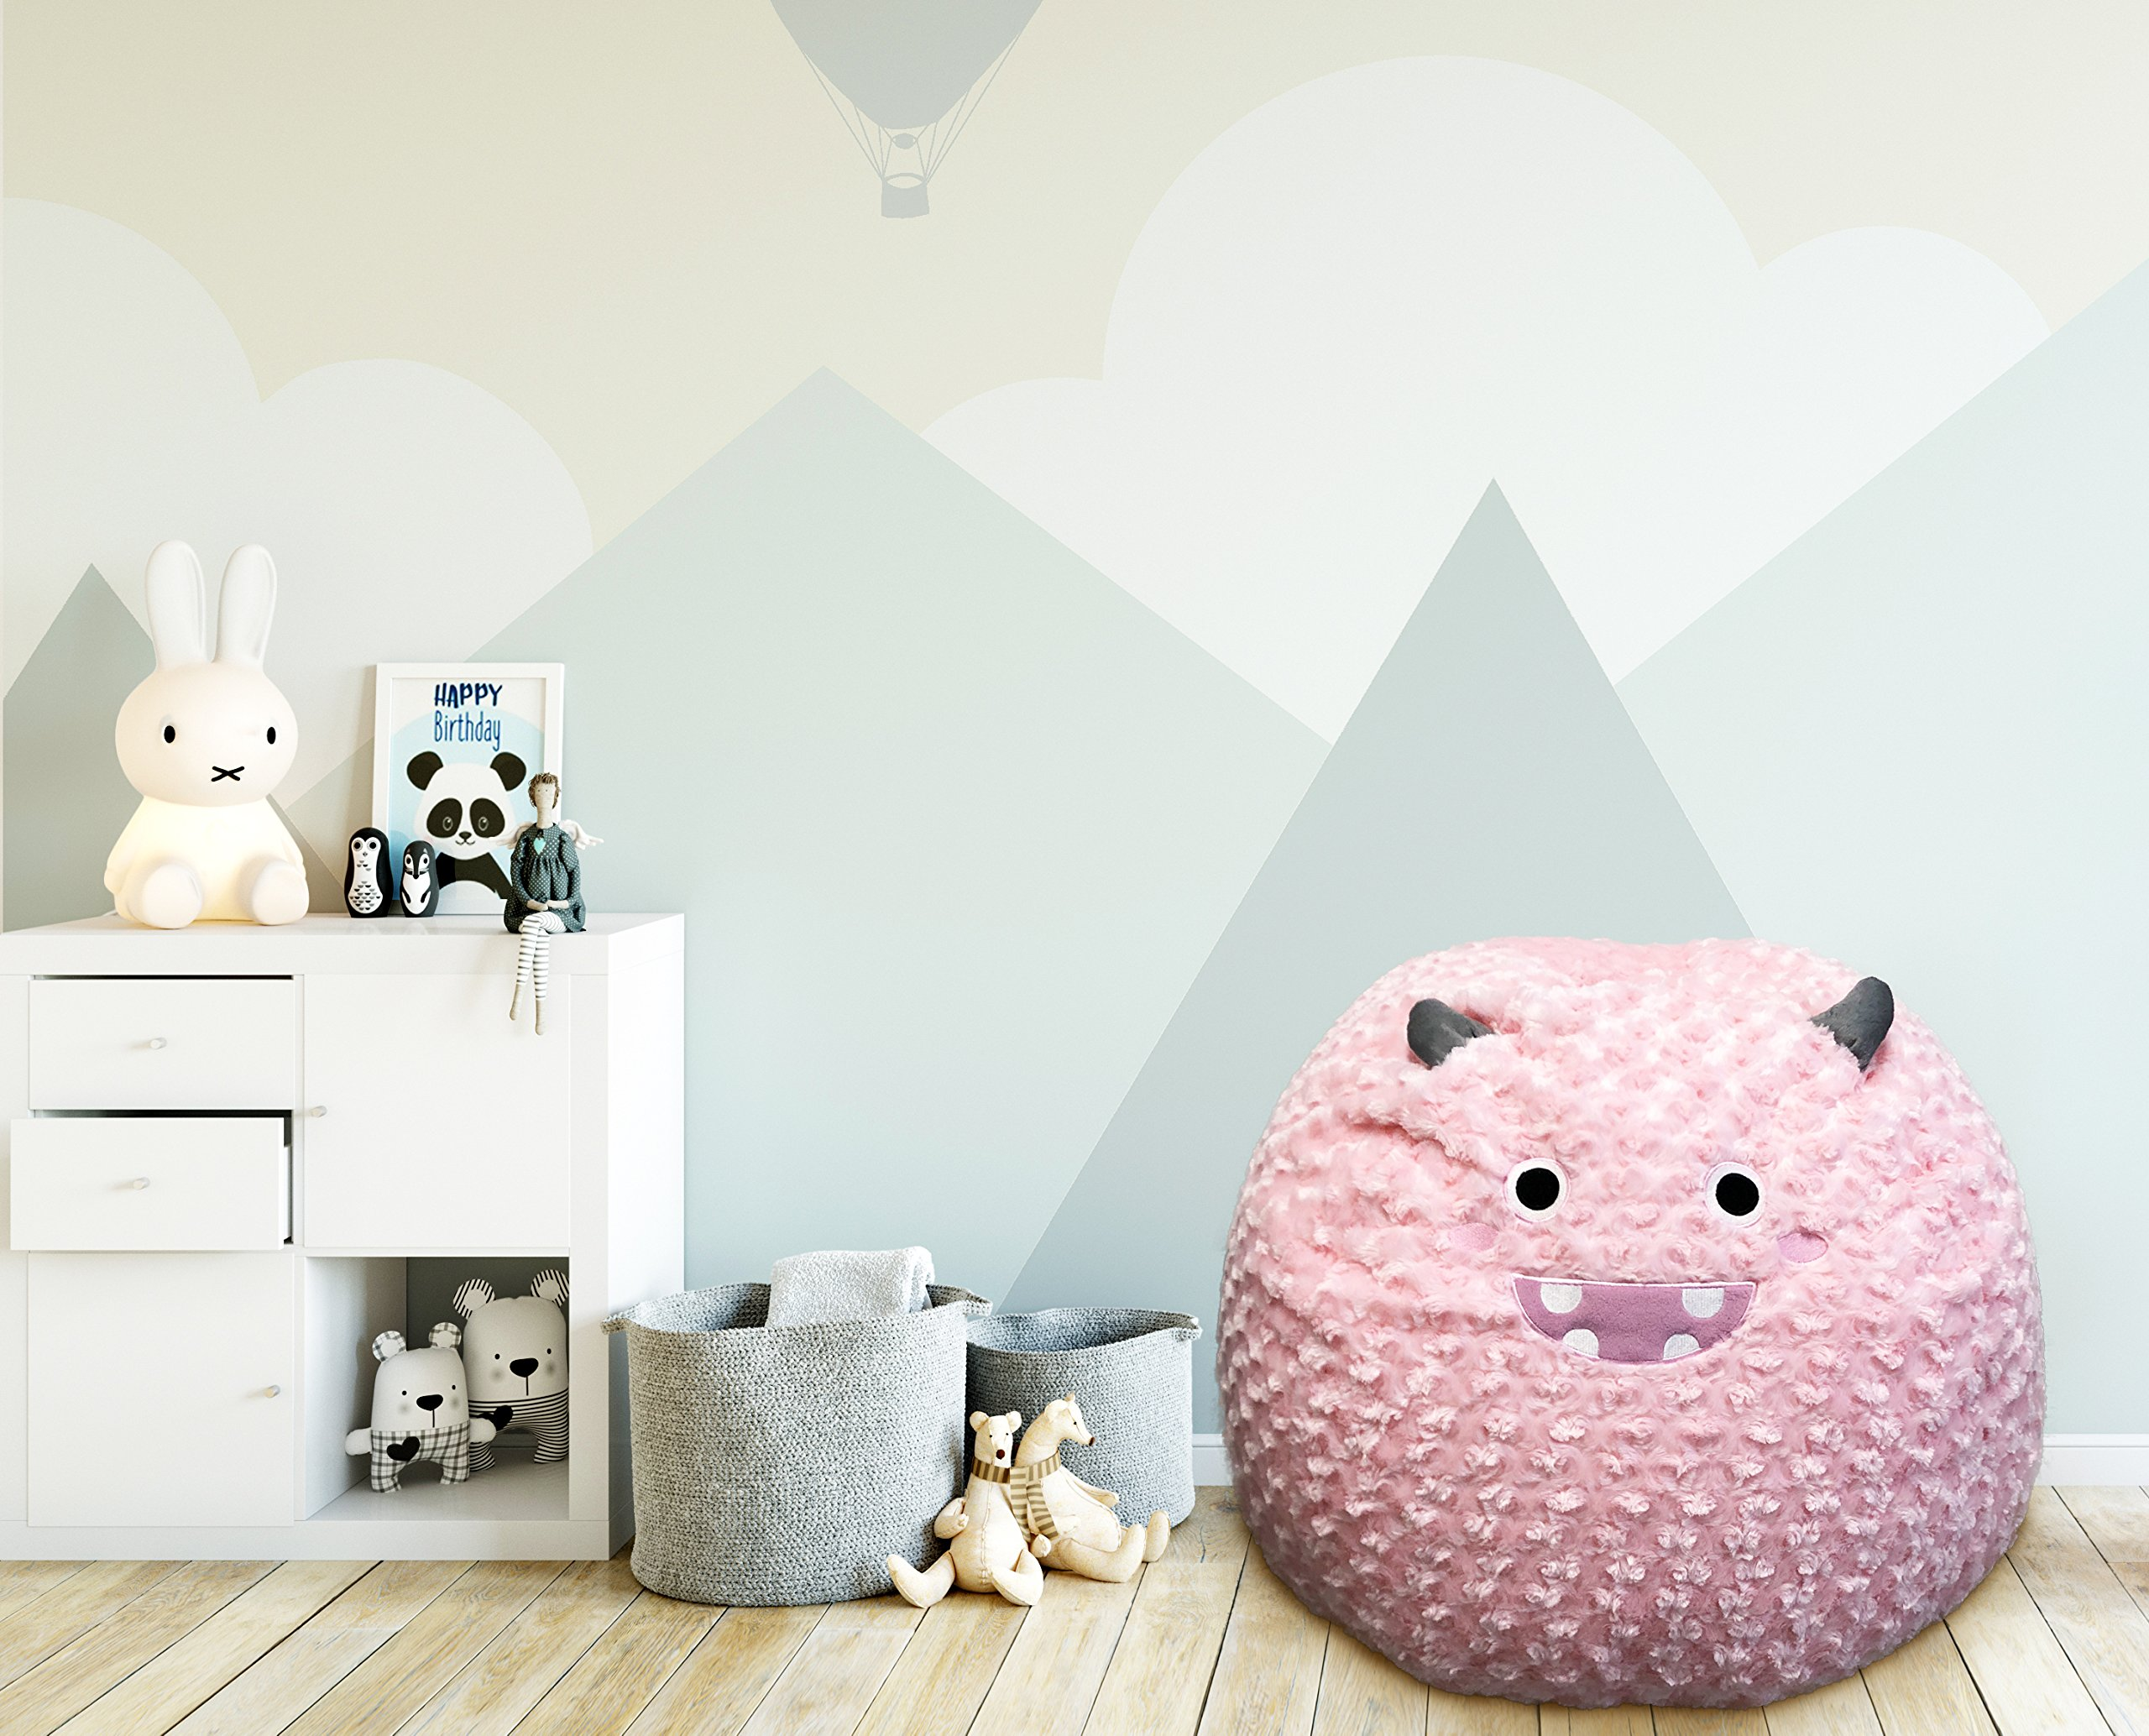 Beanbag For Kids: Soft And Comfortable Stuffed Bean Bag Chair For The Nursery, Cute Animal Design For Boys And Girls, Lux Plush Fabric, For Children Of All Ages 30'' x 30'' x 20'' (Friendly Monster)